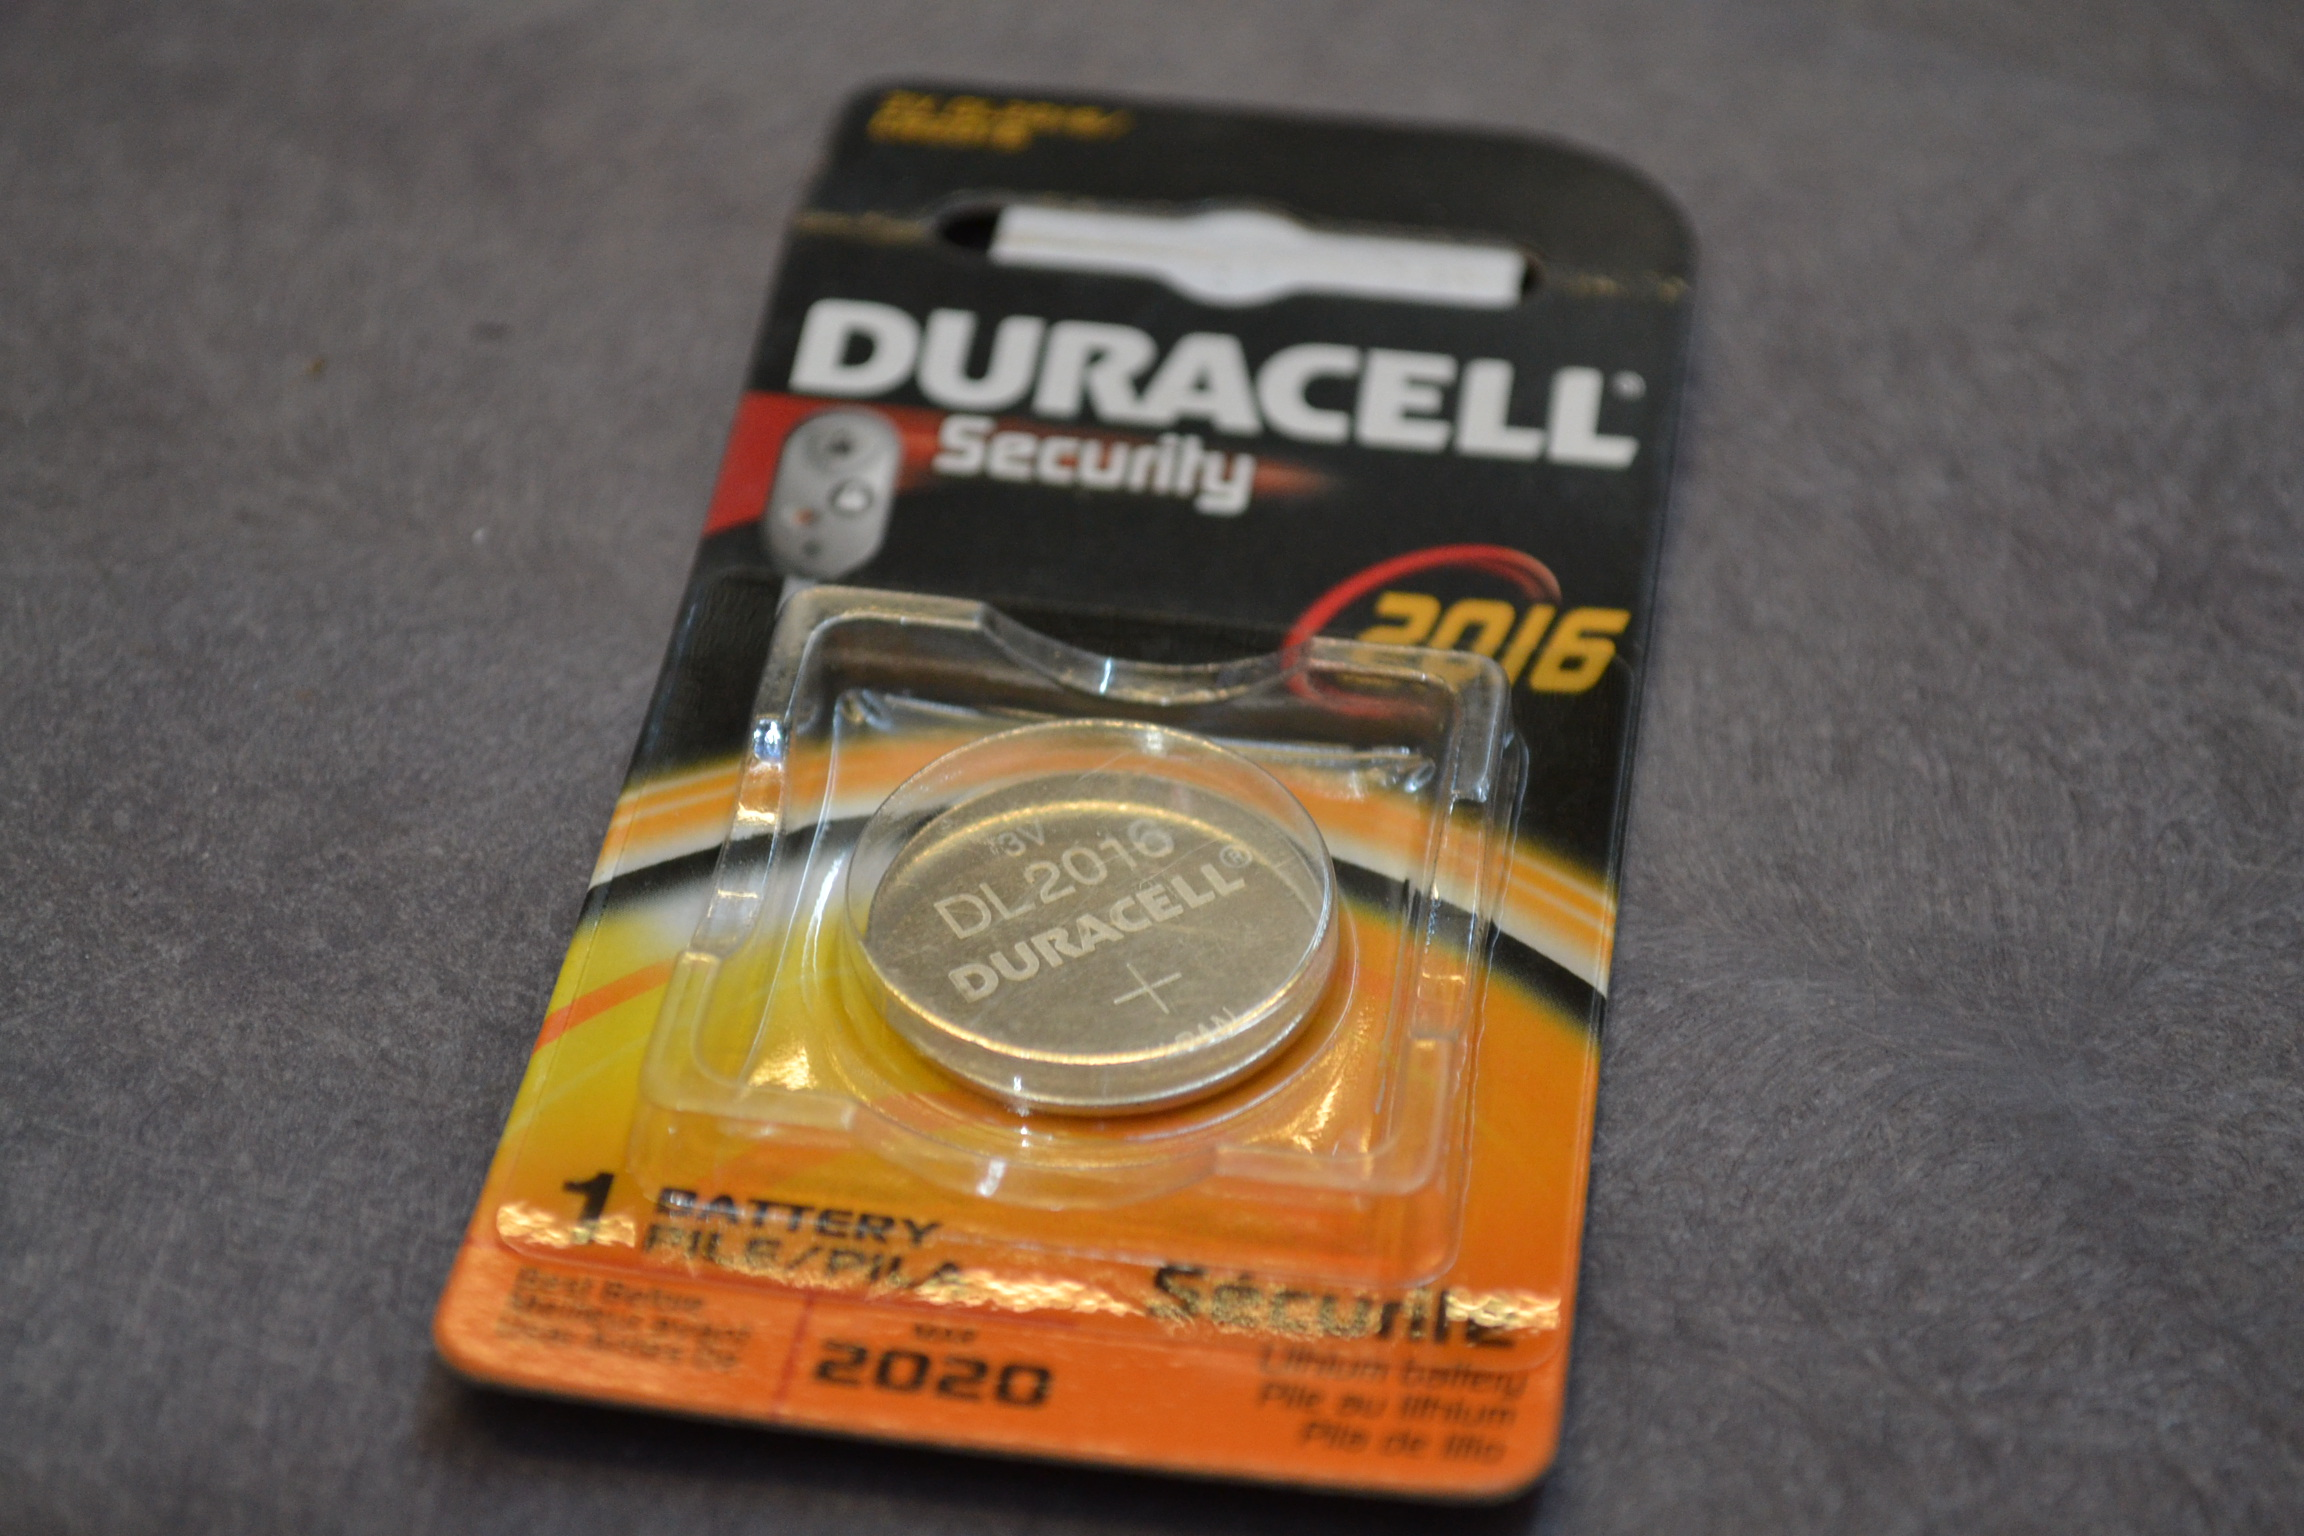 Duracell Security 2016 1 Count Coin Button